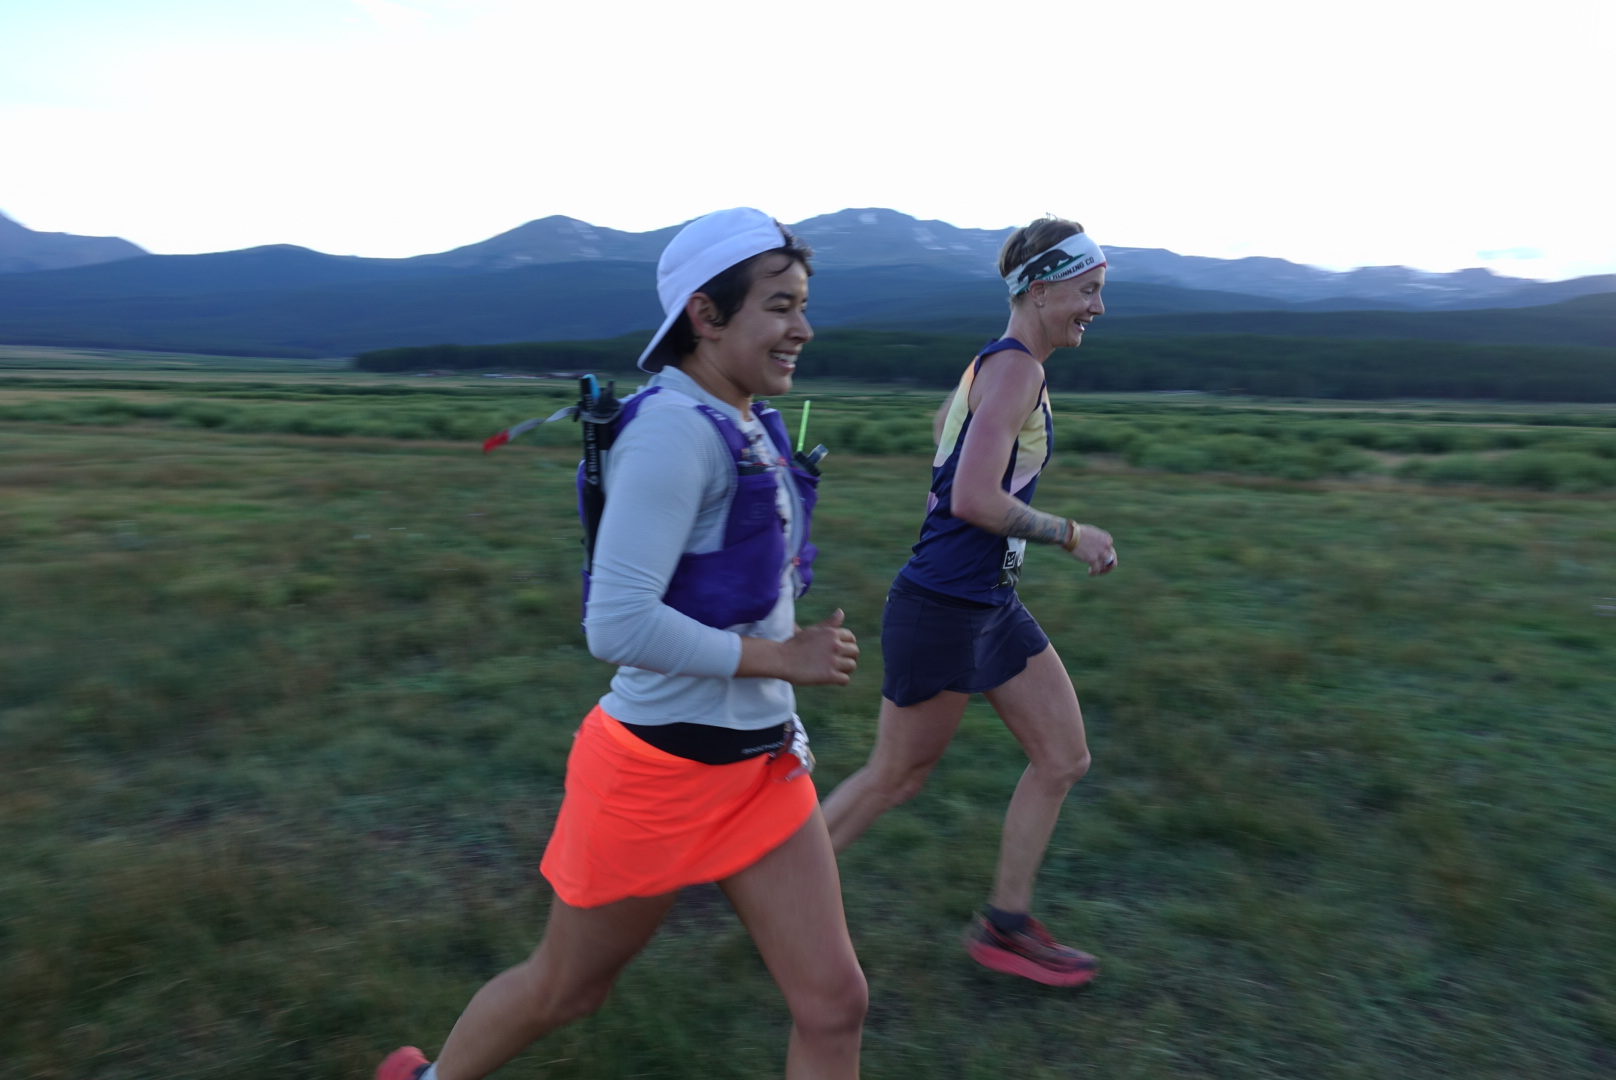 Smiling happy girls rocking Oiselle skirts. Photo by Sufferfest Beer!